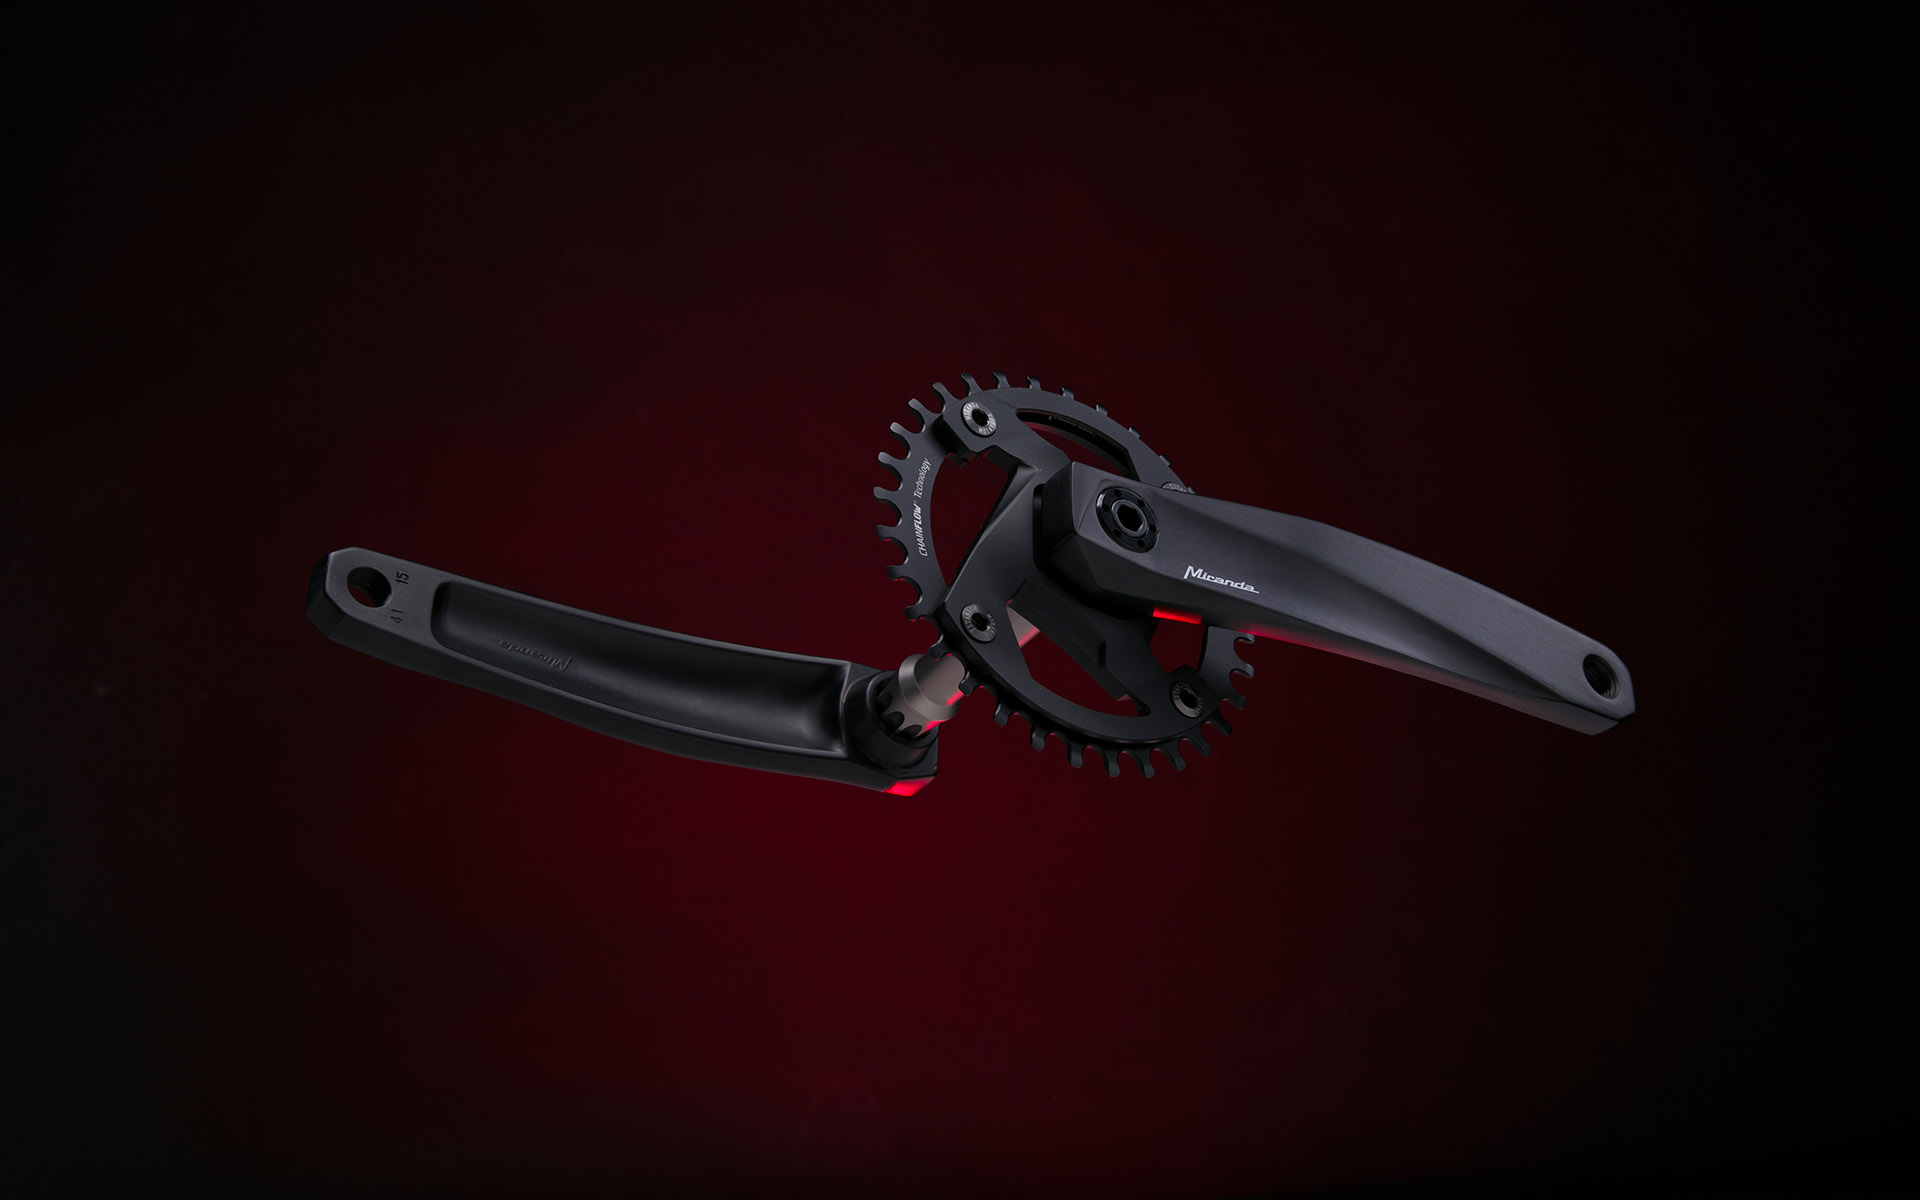 <p>3D modeling and exclusive packaging for the first true modular bicycle crankset</p>